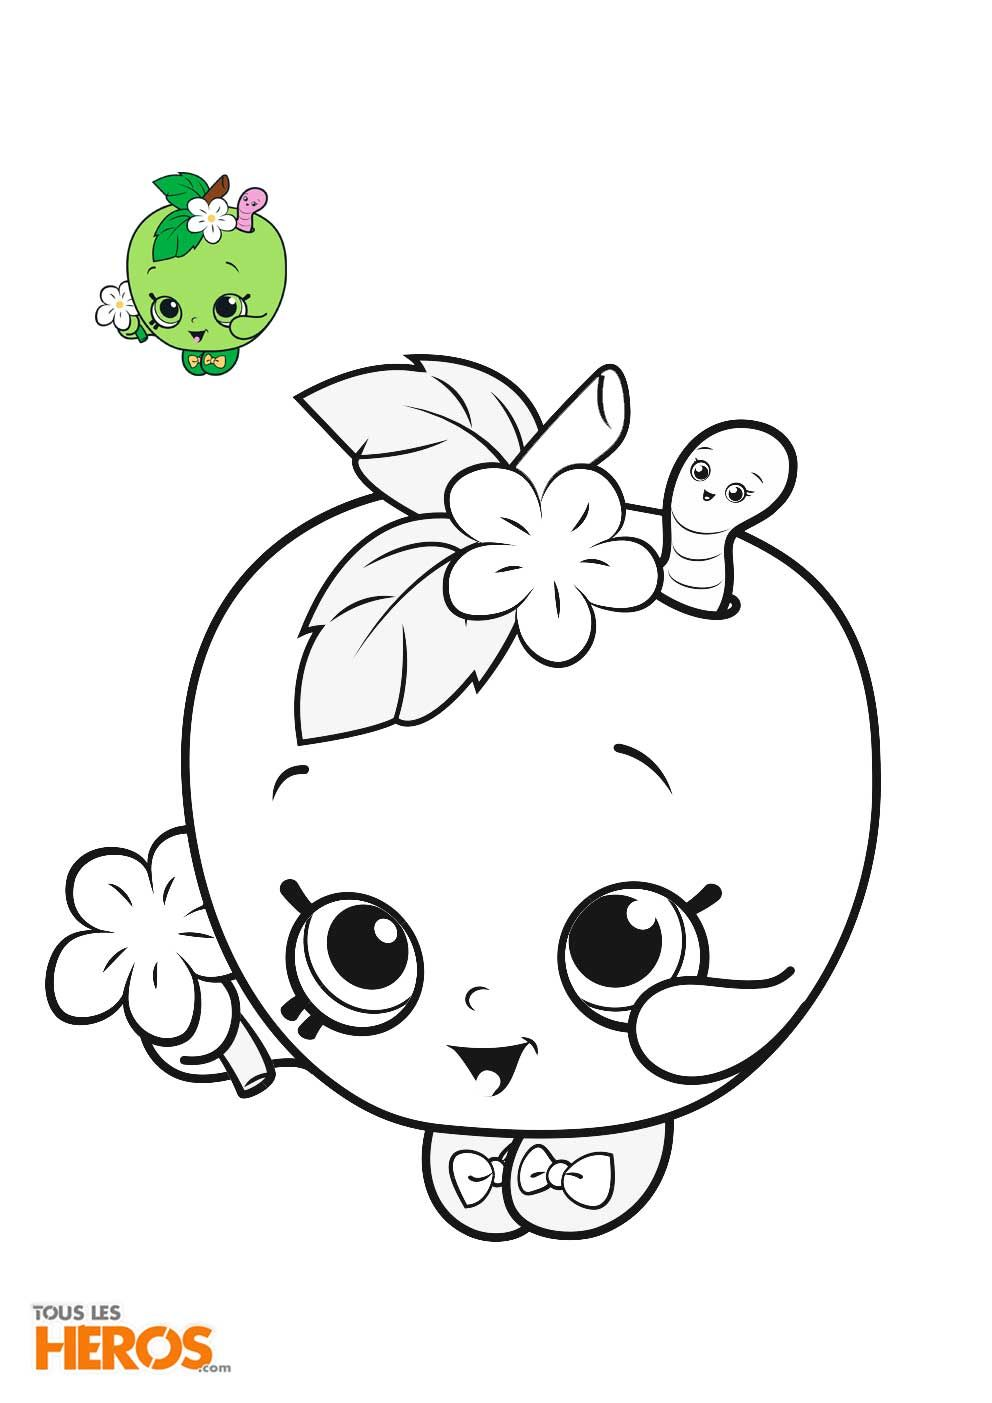 Pin By Julie Brossard On Crafts Cute Coloring Pages Disney Princess Coloring Pages Shopkins Colouring Pages